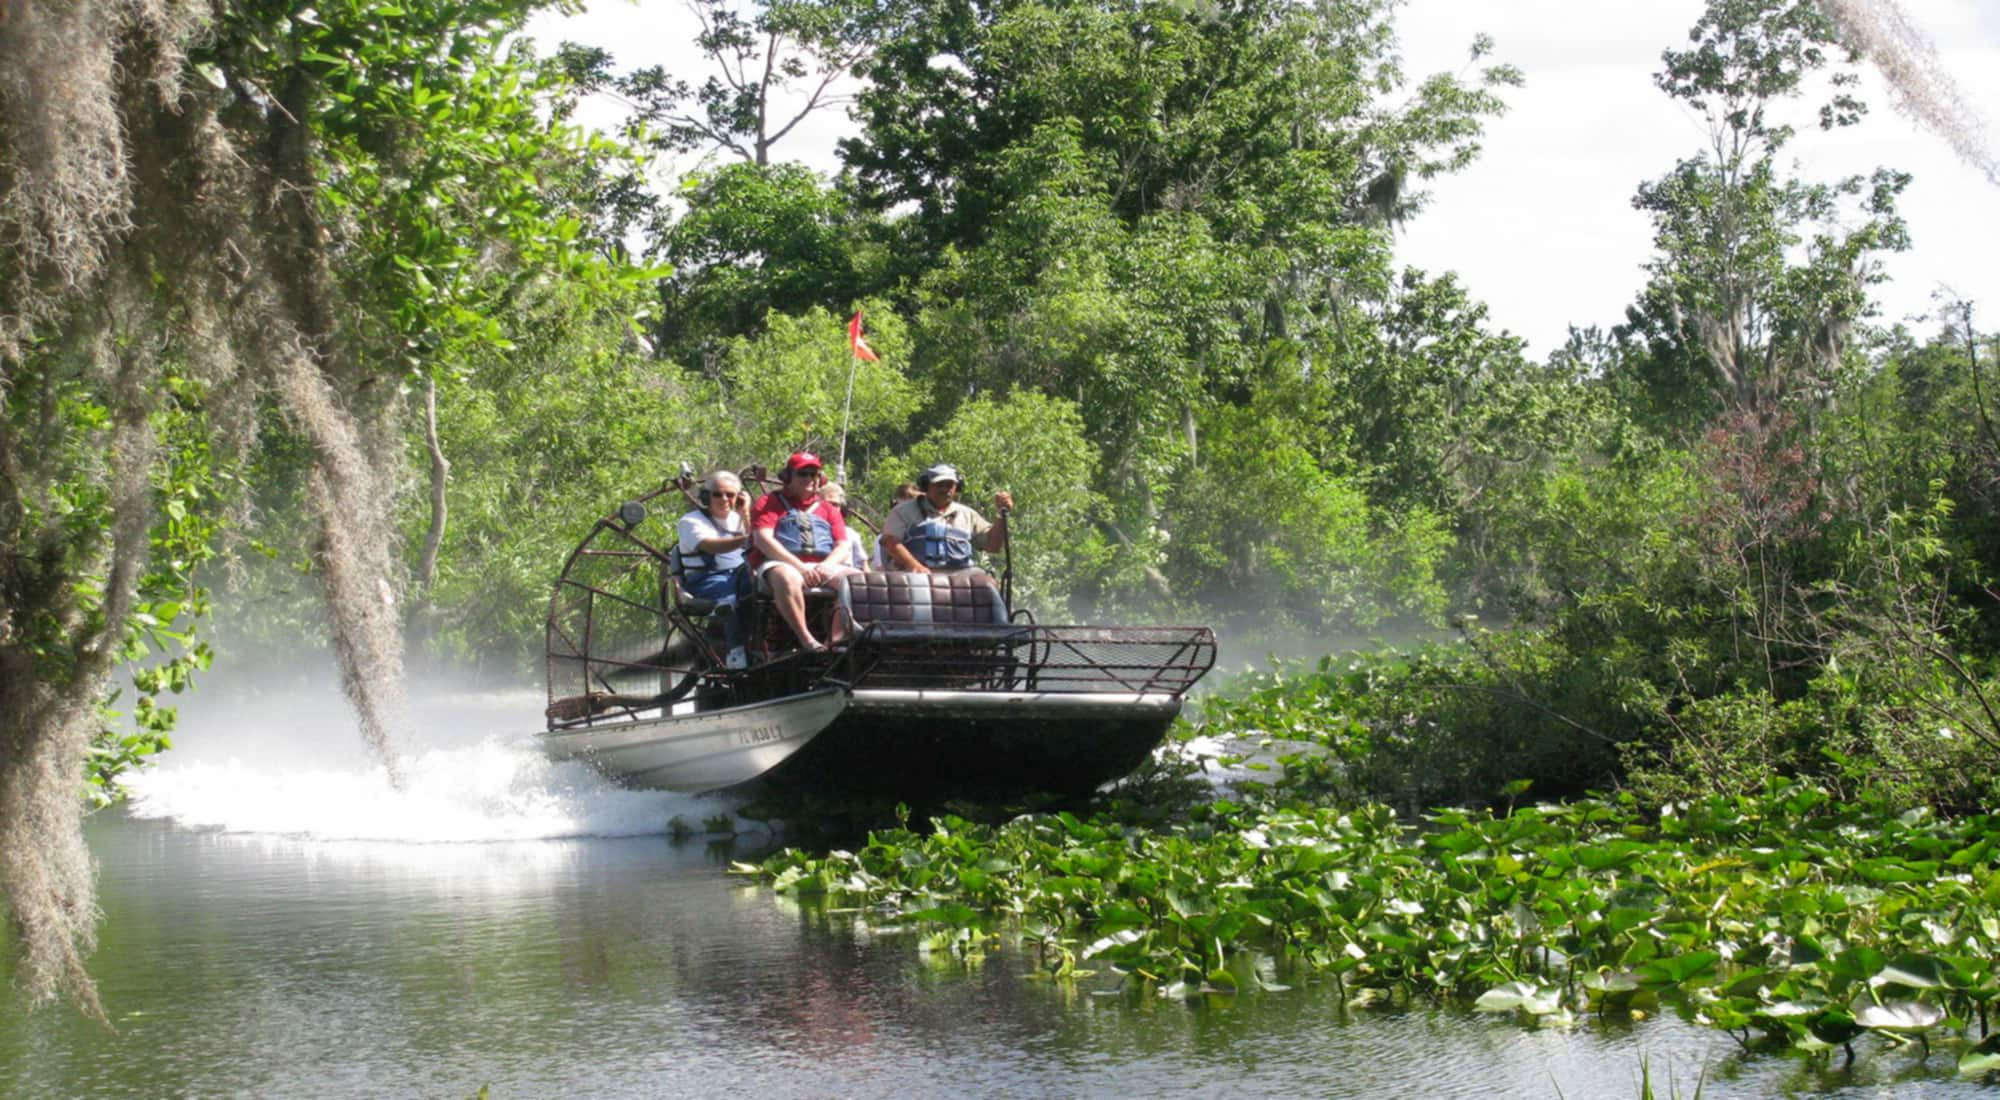 Group on airboat going over water and green plants with Captain Fred's Airboat Nature Tours